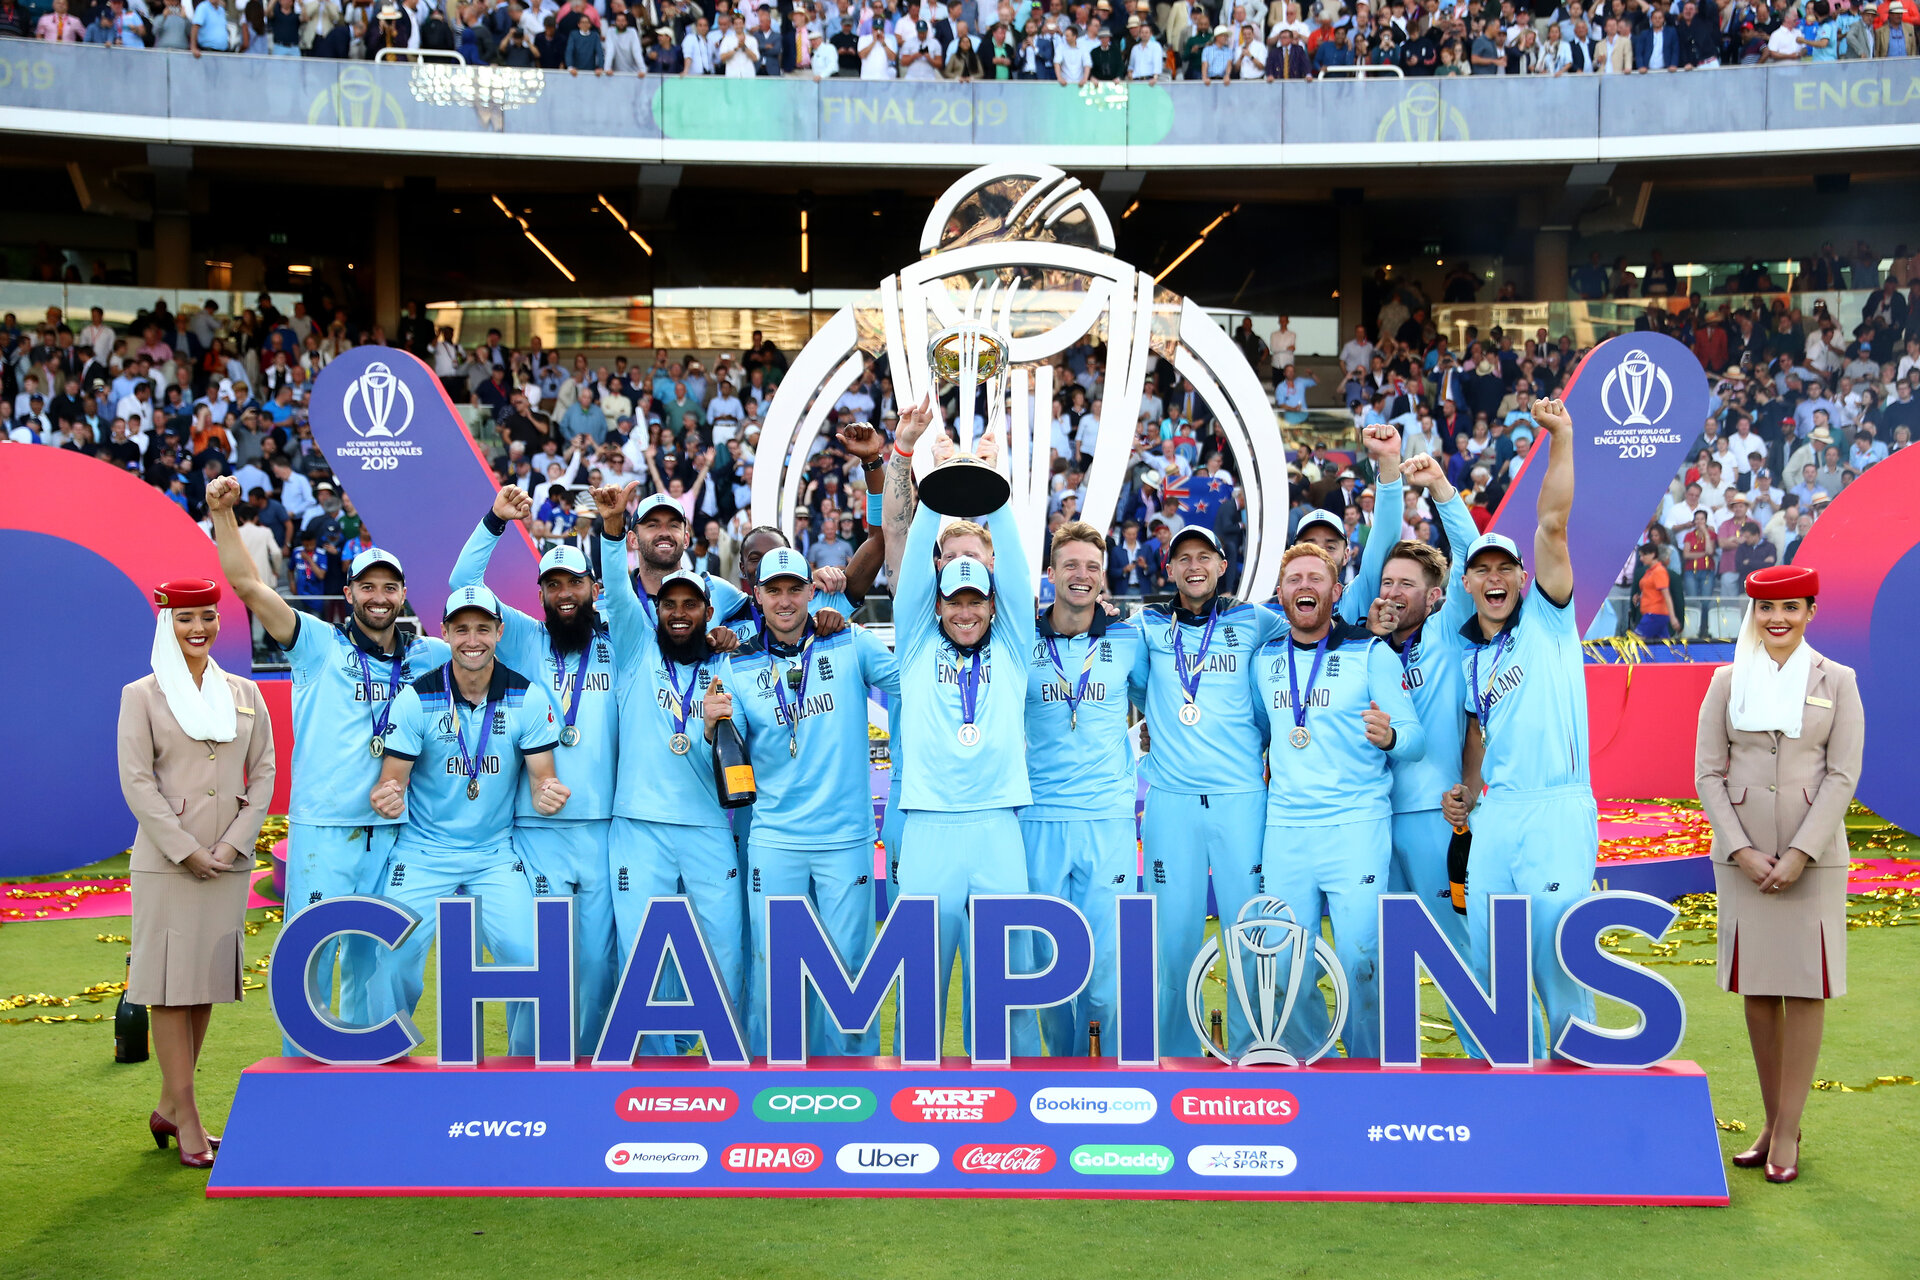 LONDON, ENGLAND - JULY 14: England Captain Eoin Morgan lifts the World Cup with the England team after victory for England during the Final of the ICC Cricket World Cup 2019 between New Zealand and England at Lord's Cricket Ground on July 14, 2019 in London, England. (Photo by Michael Steele/Getty Images)